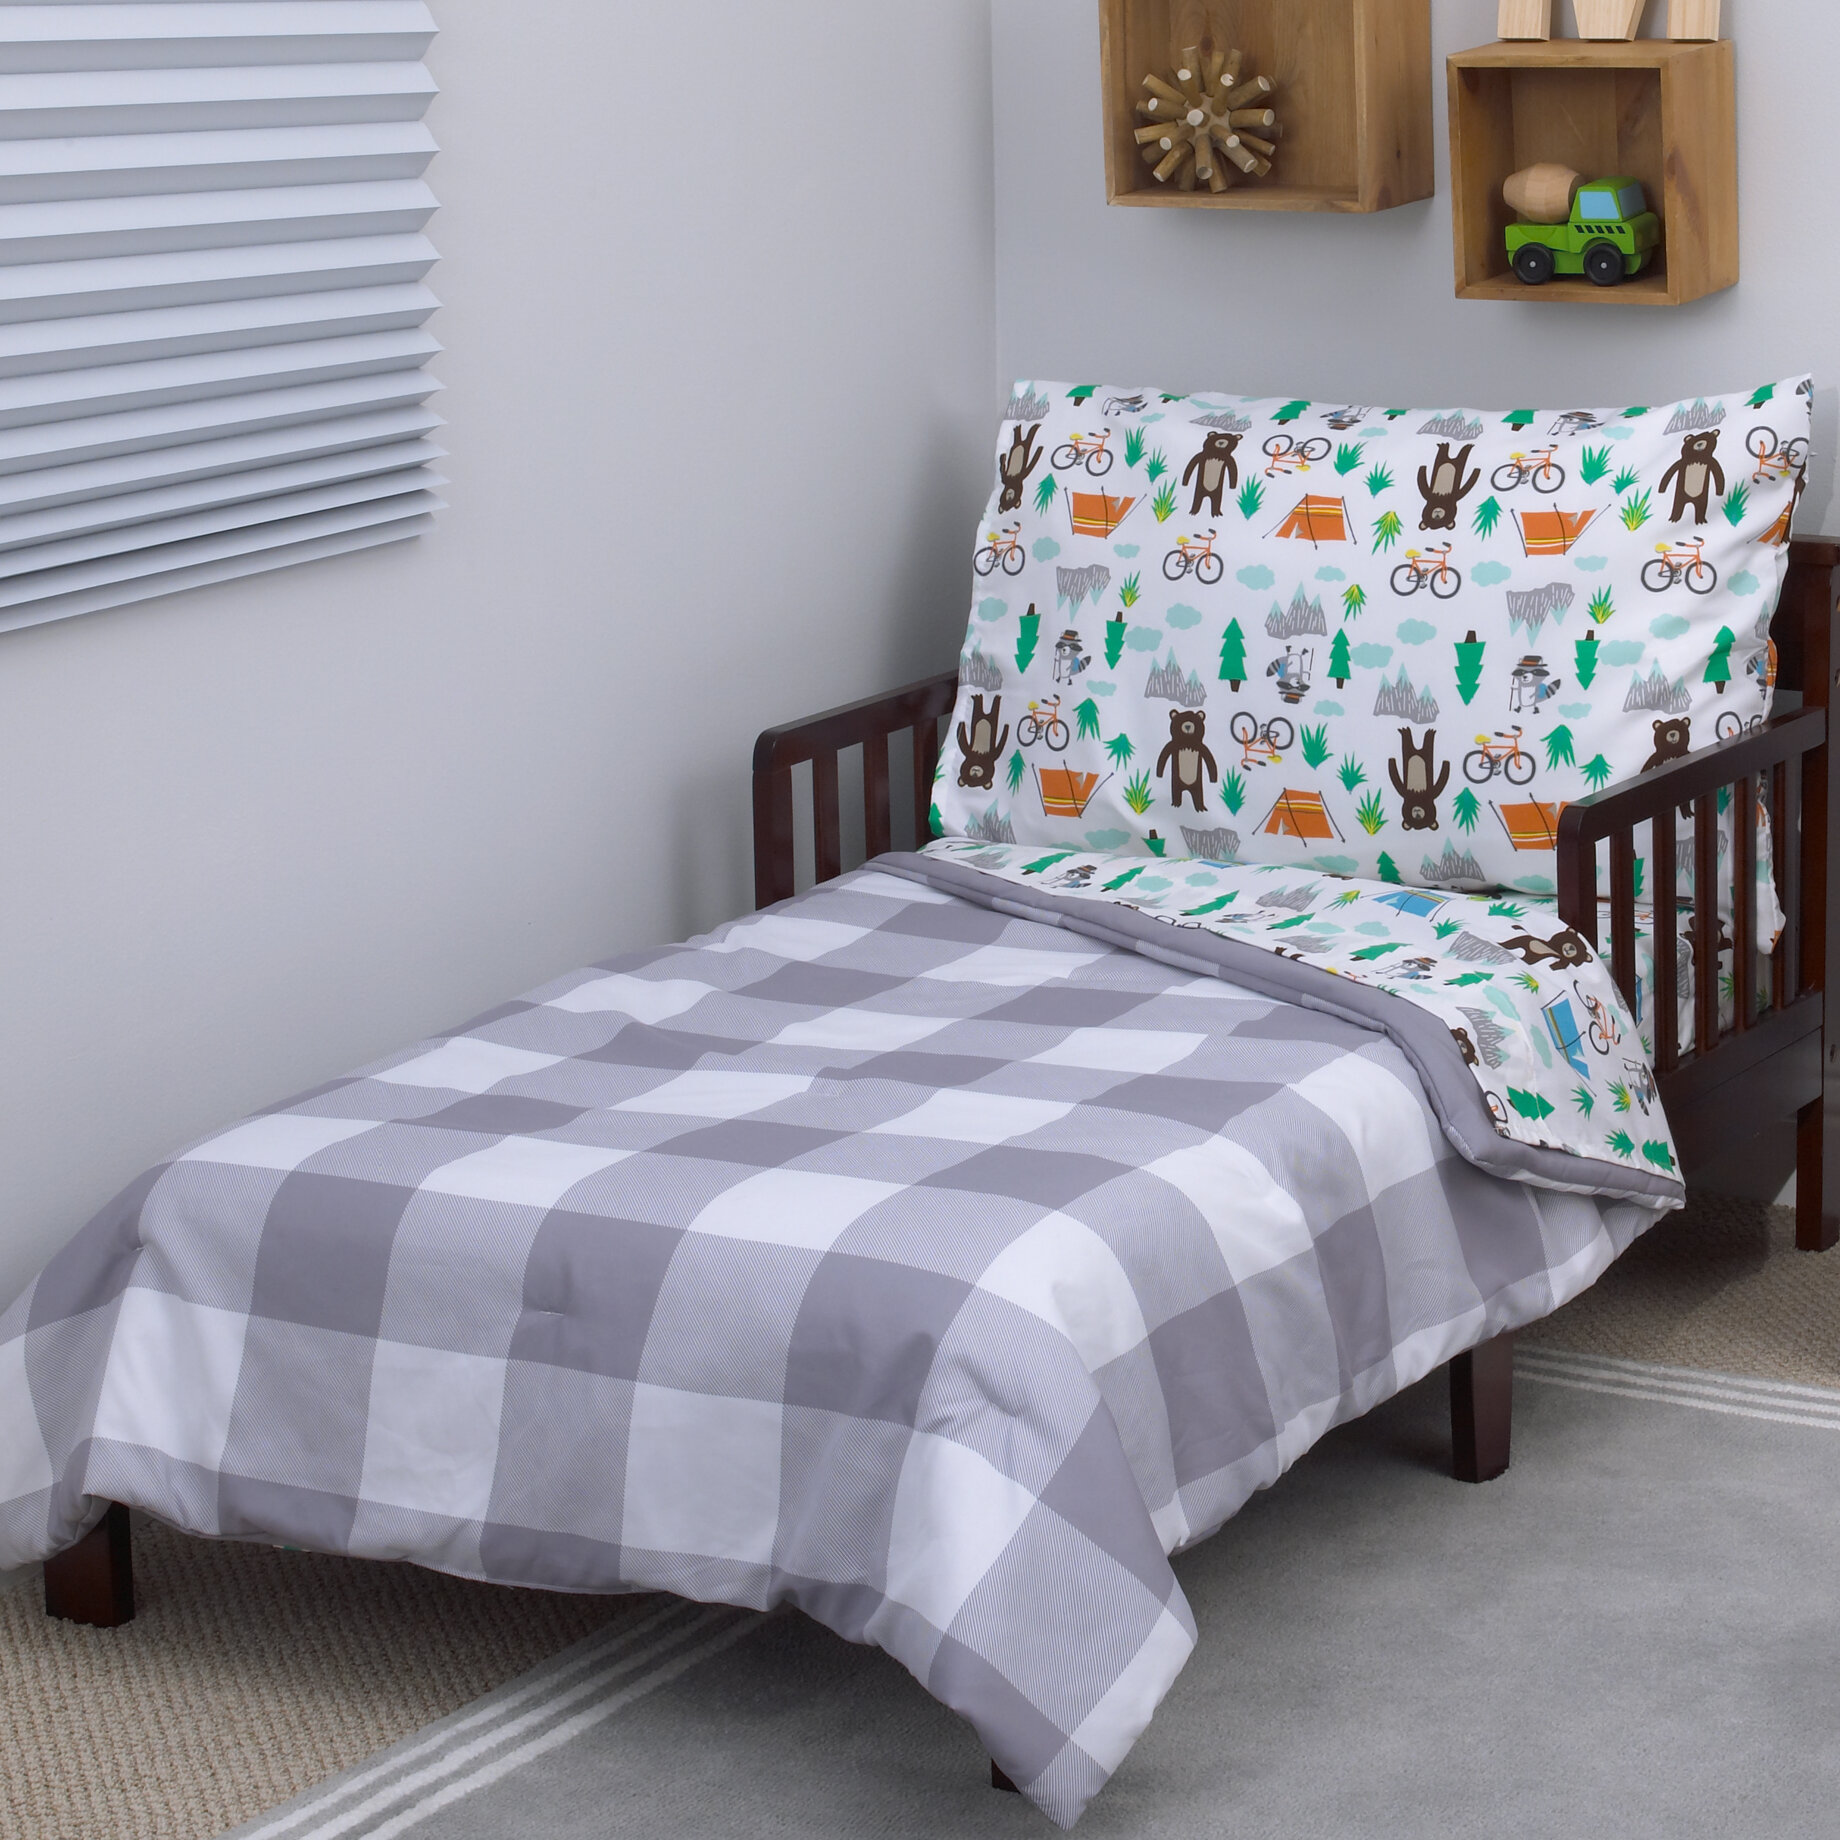 carters woodland boy 4 piece toddler bedding set wayfair - Toddler Bed Sets